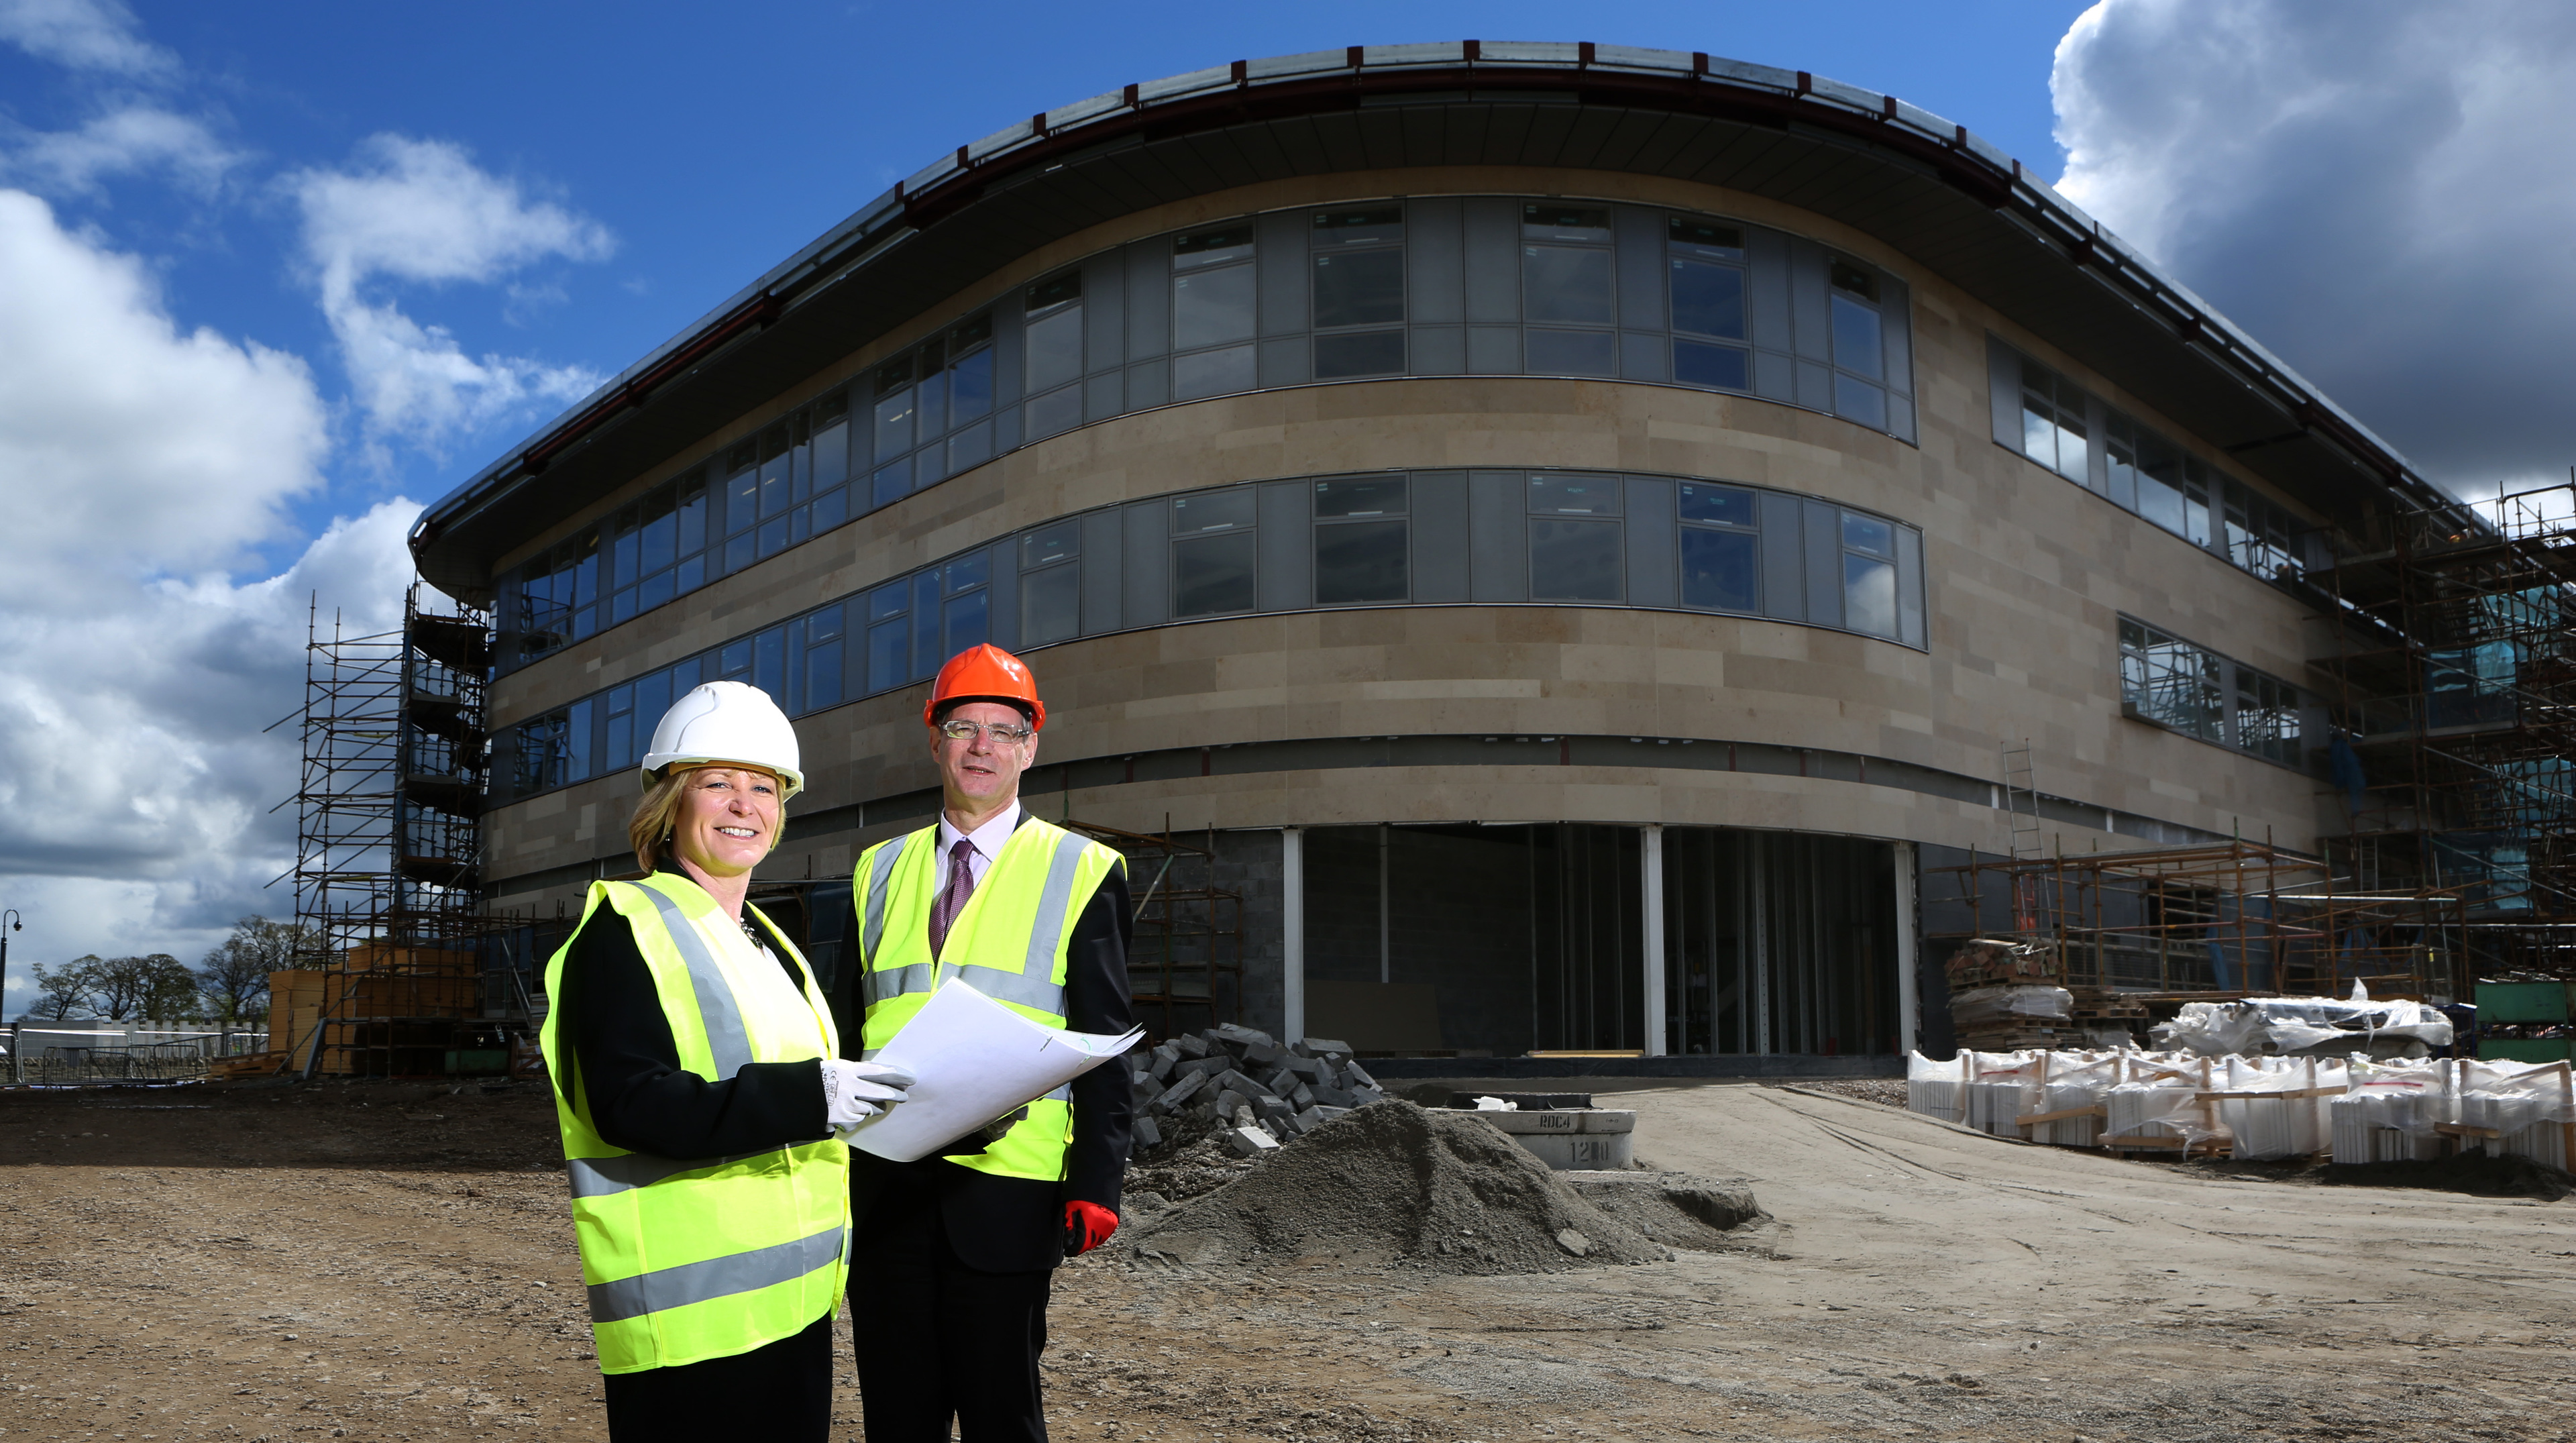 Inverness principal Diane Rawlinson and David Martin MEP have preview of Inverness College building work